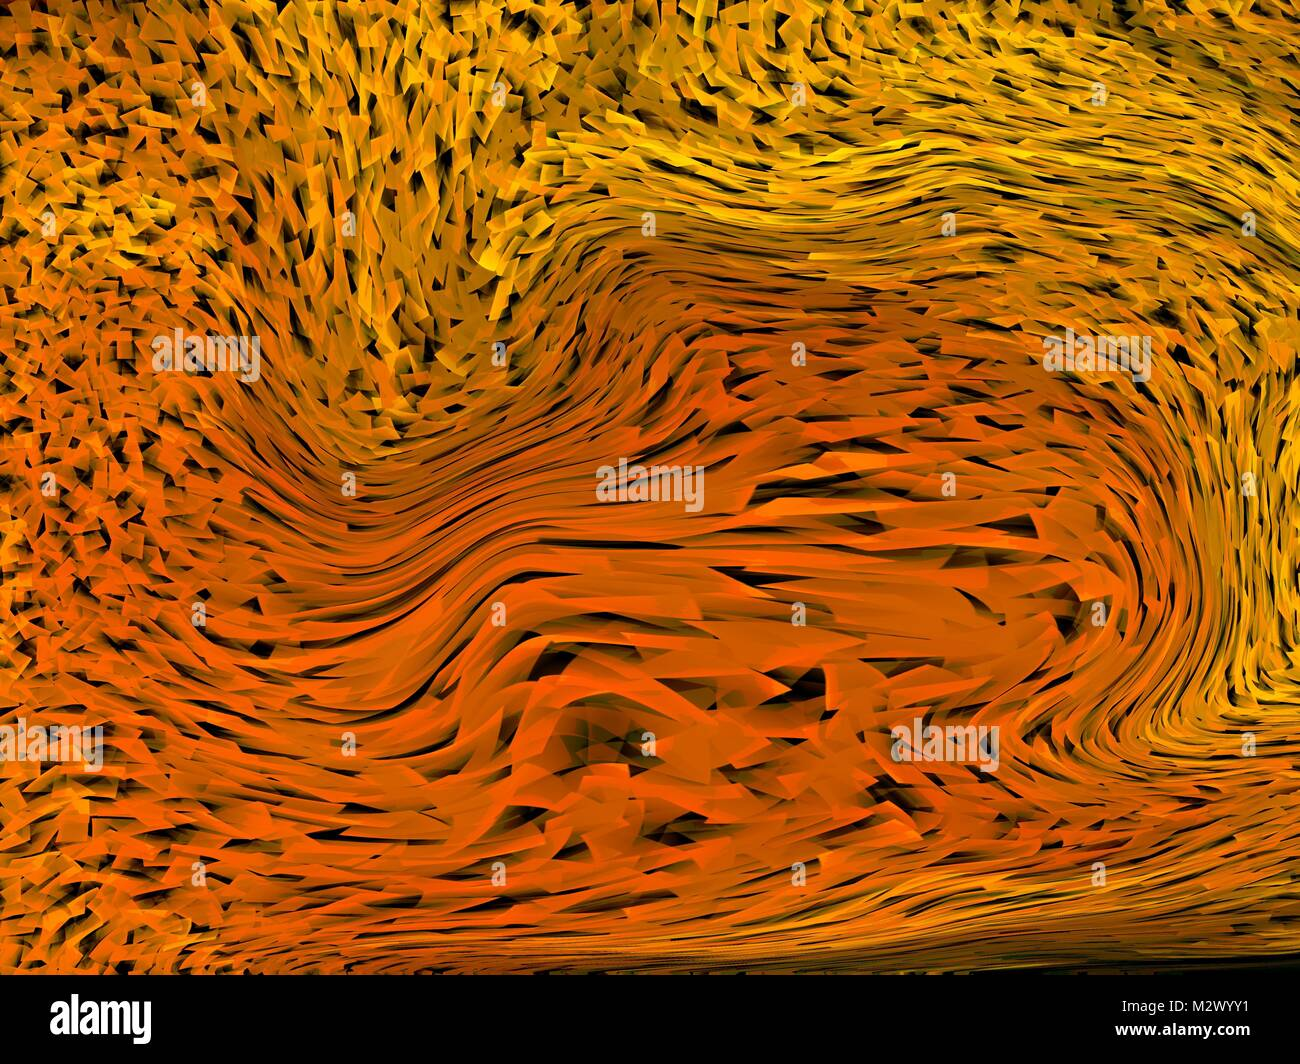 Abstract black and amber warped fractals background - Stock Image